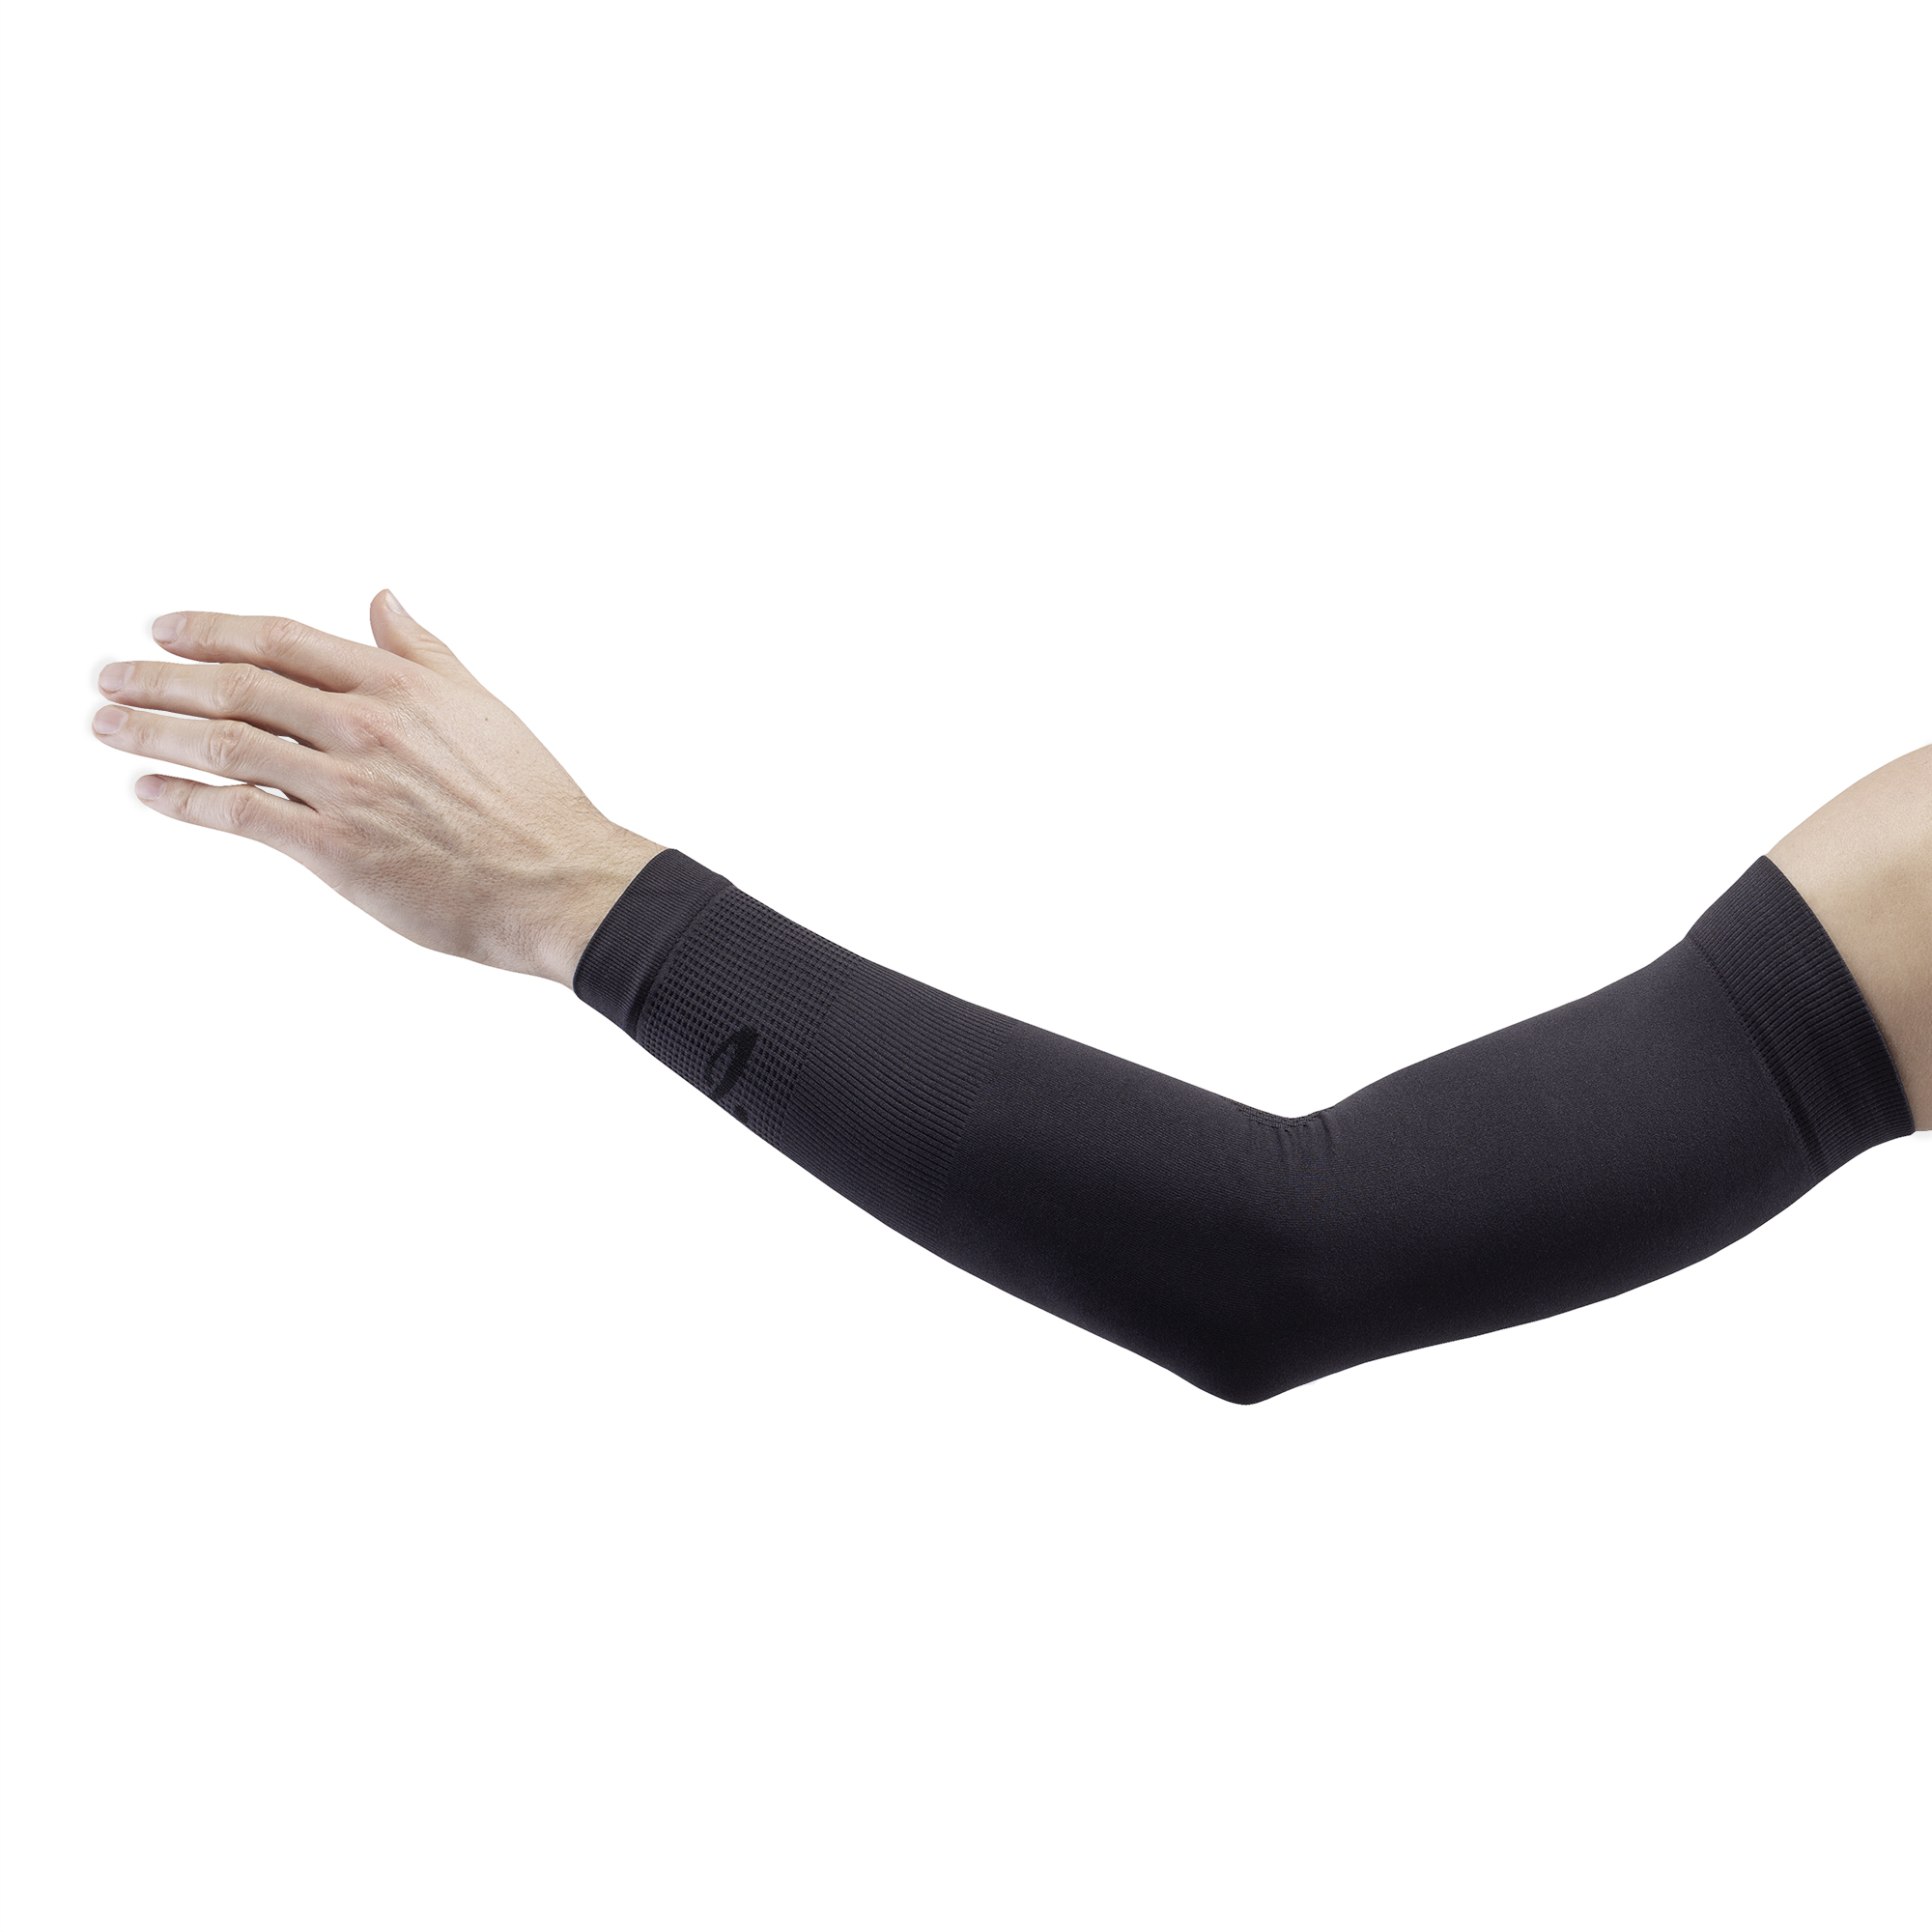 Isadore Eco-Knit Arm Warmers | Warmers